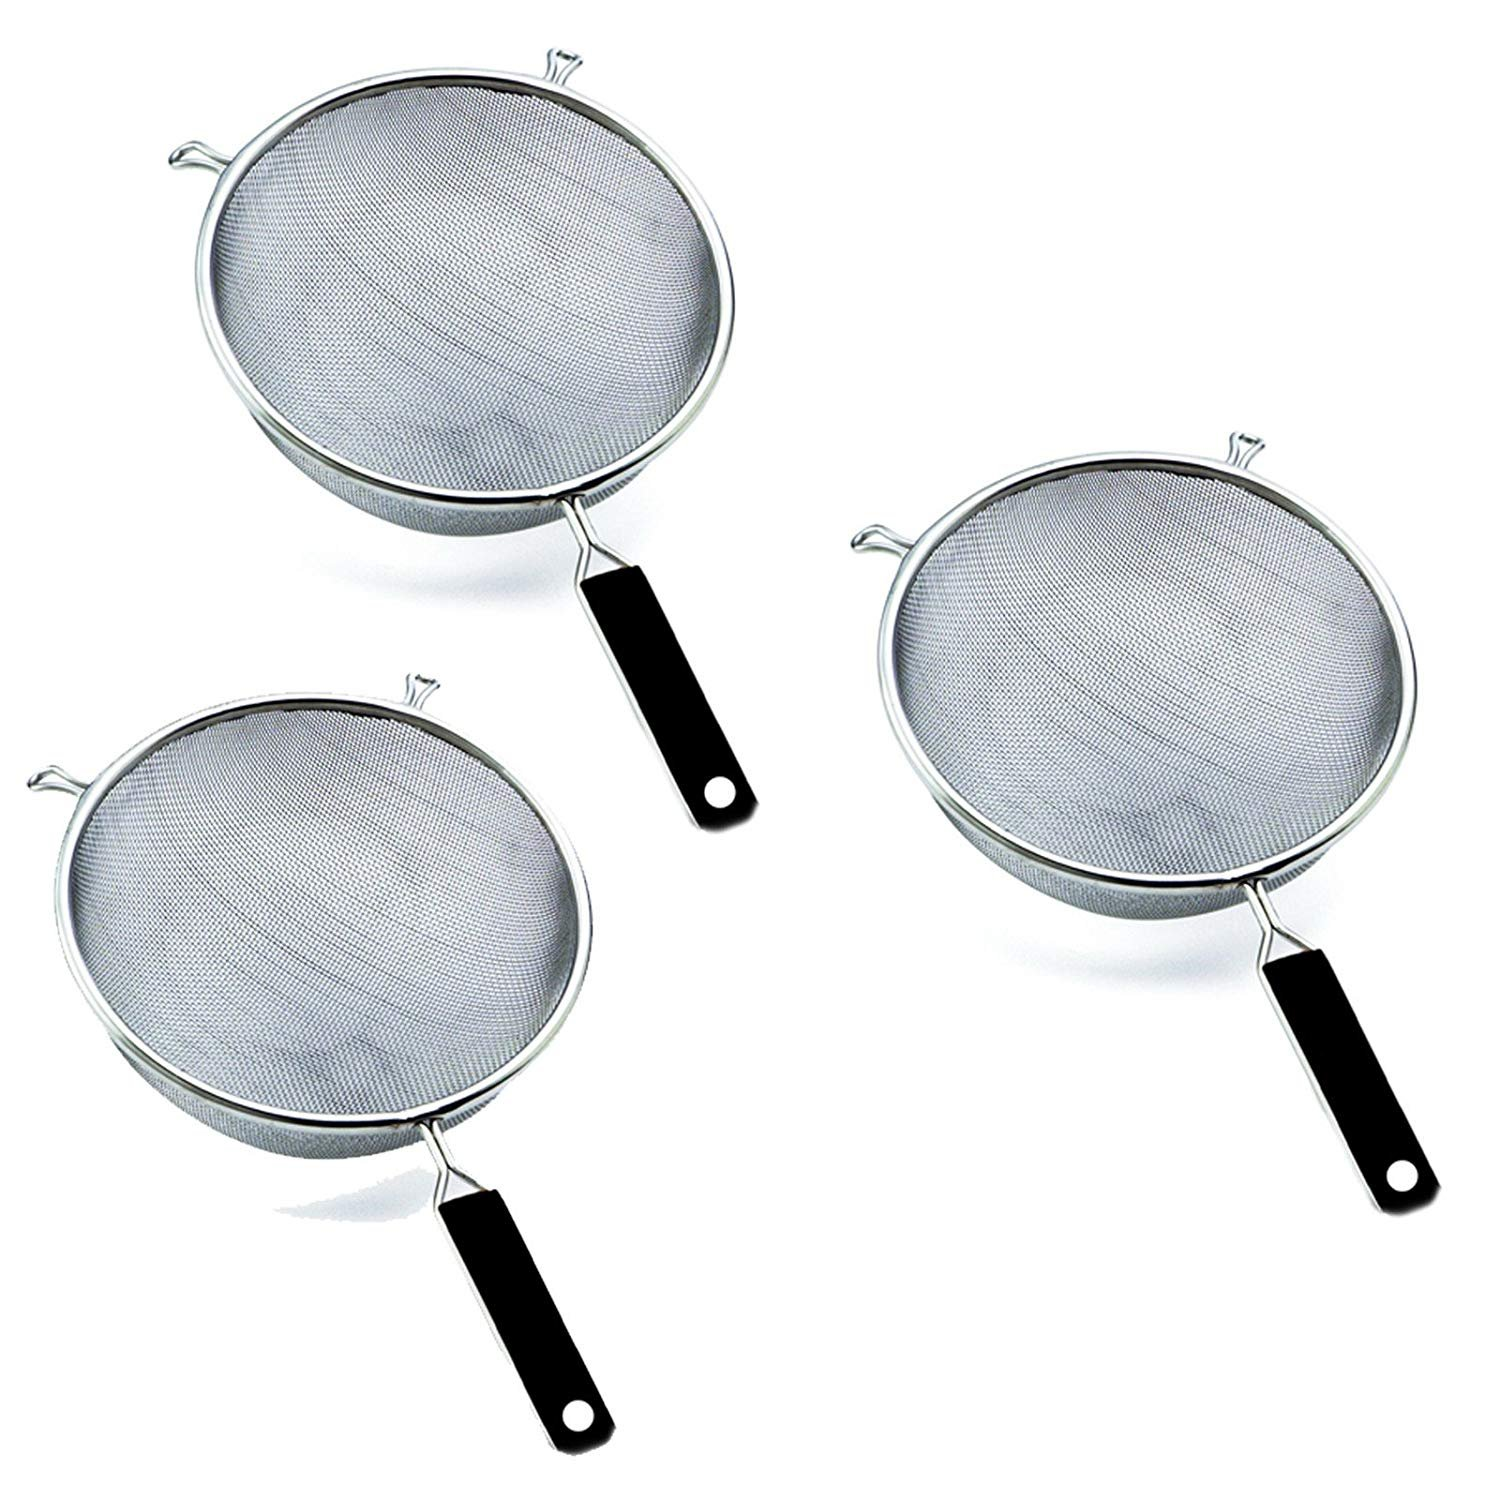 "Wideskall® 5.5"" Stainless Steel Mesh Strainer Colander Basket with Handle Cookware, Pack of 3"